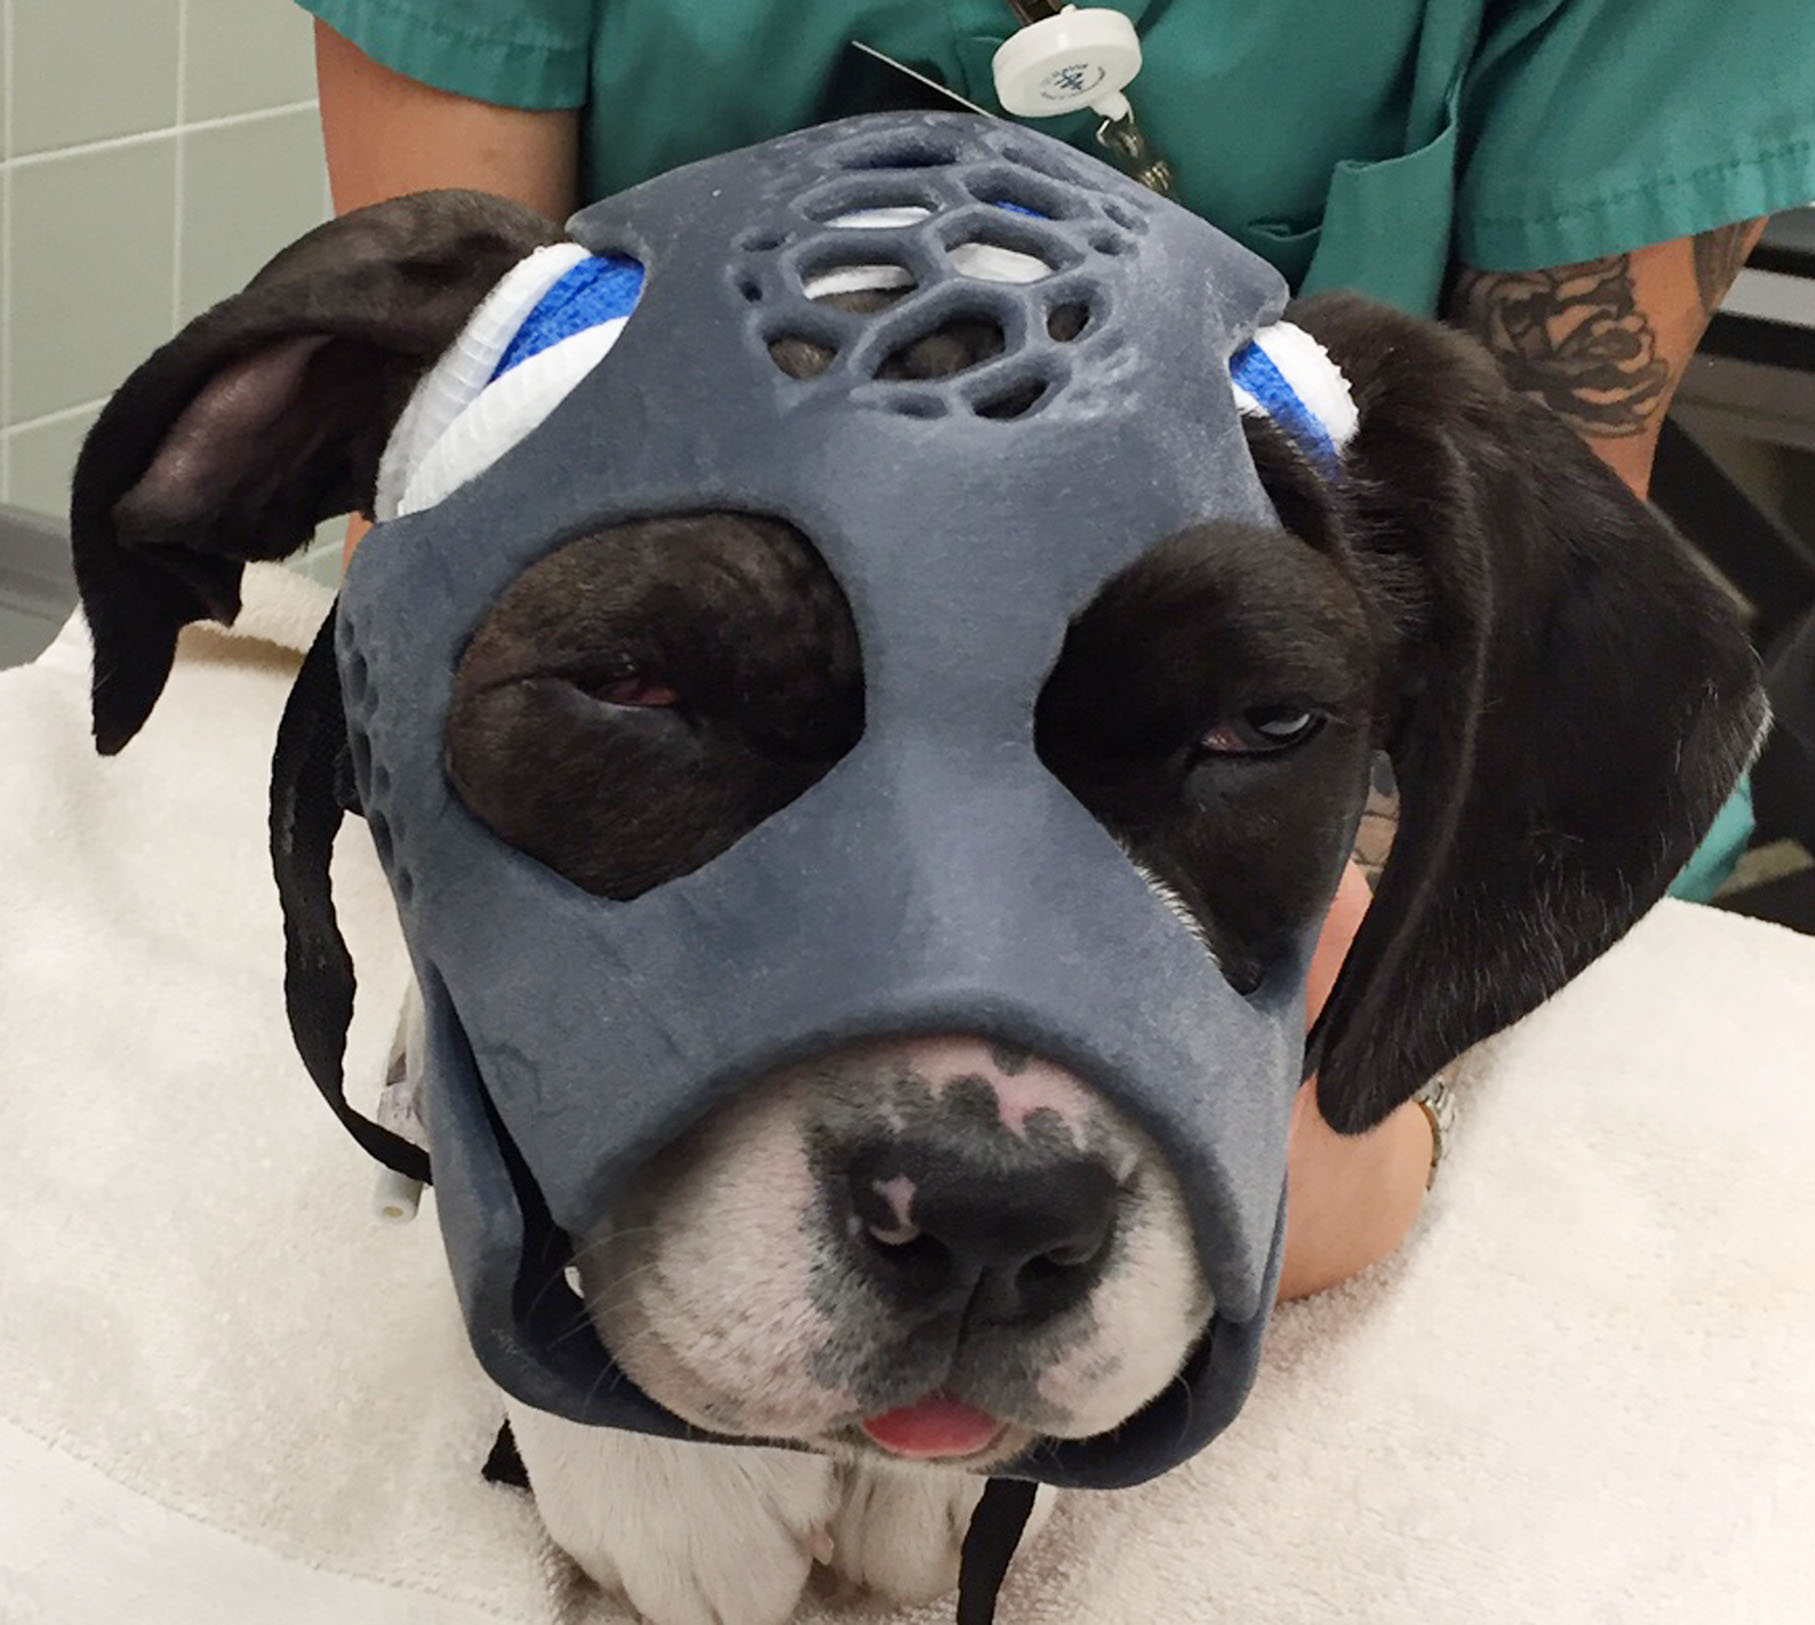 3D Printed Mask Helps Heal Dog's Skull